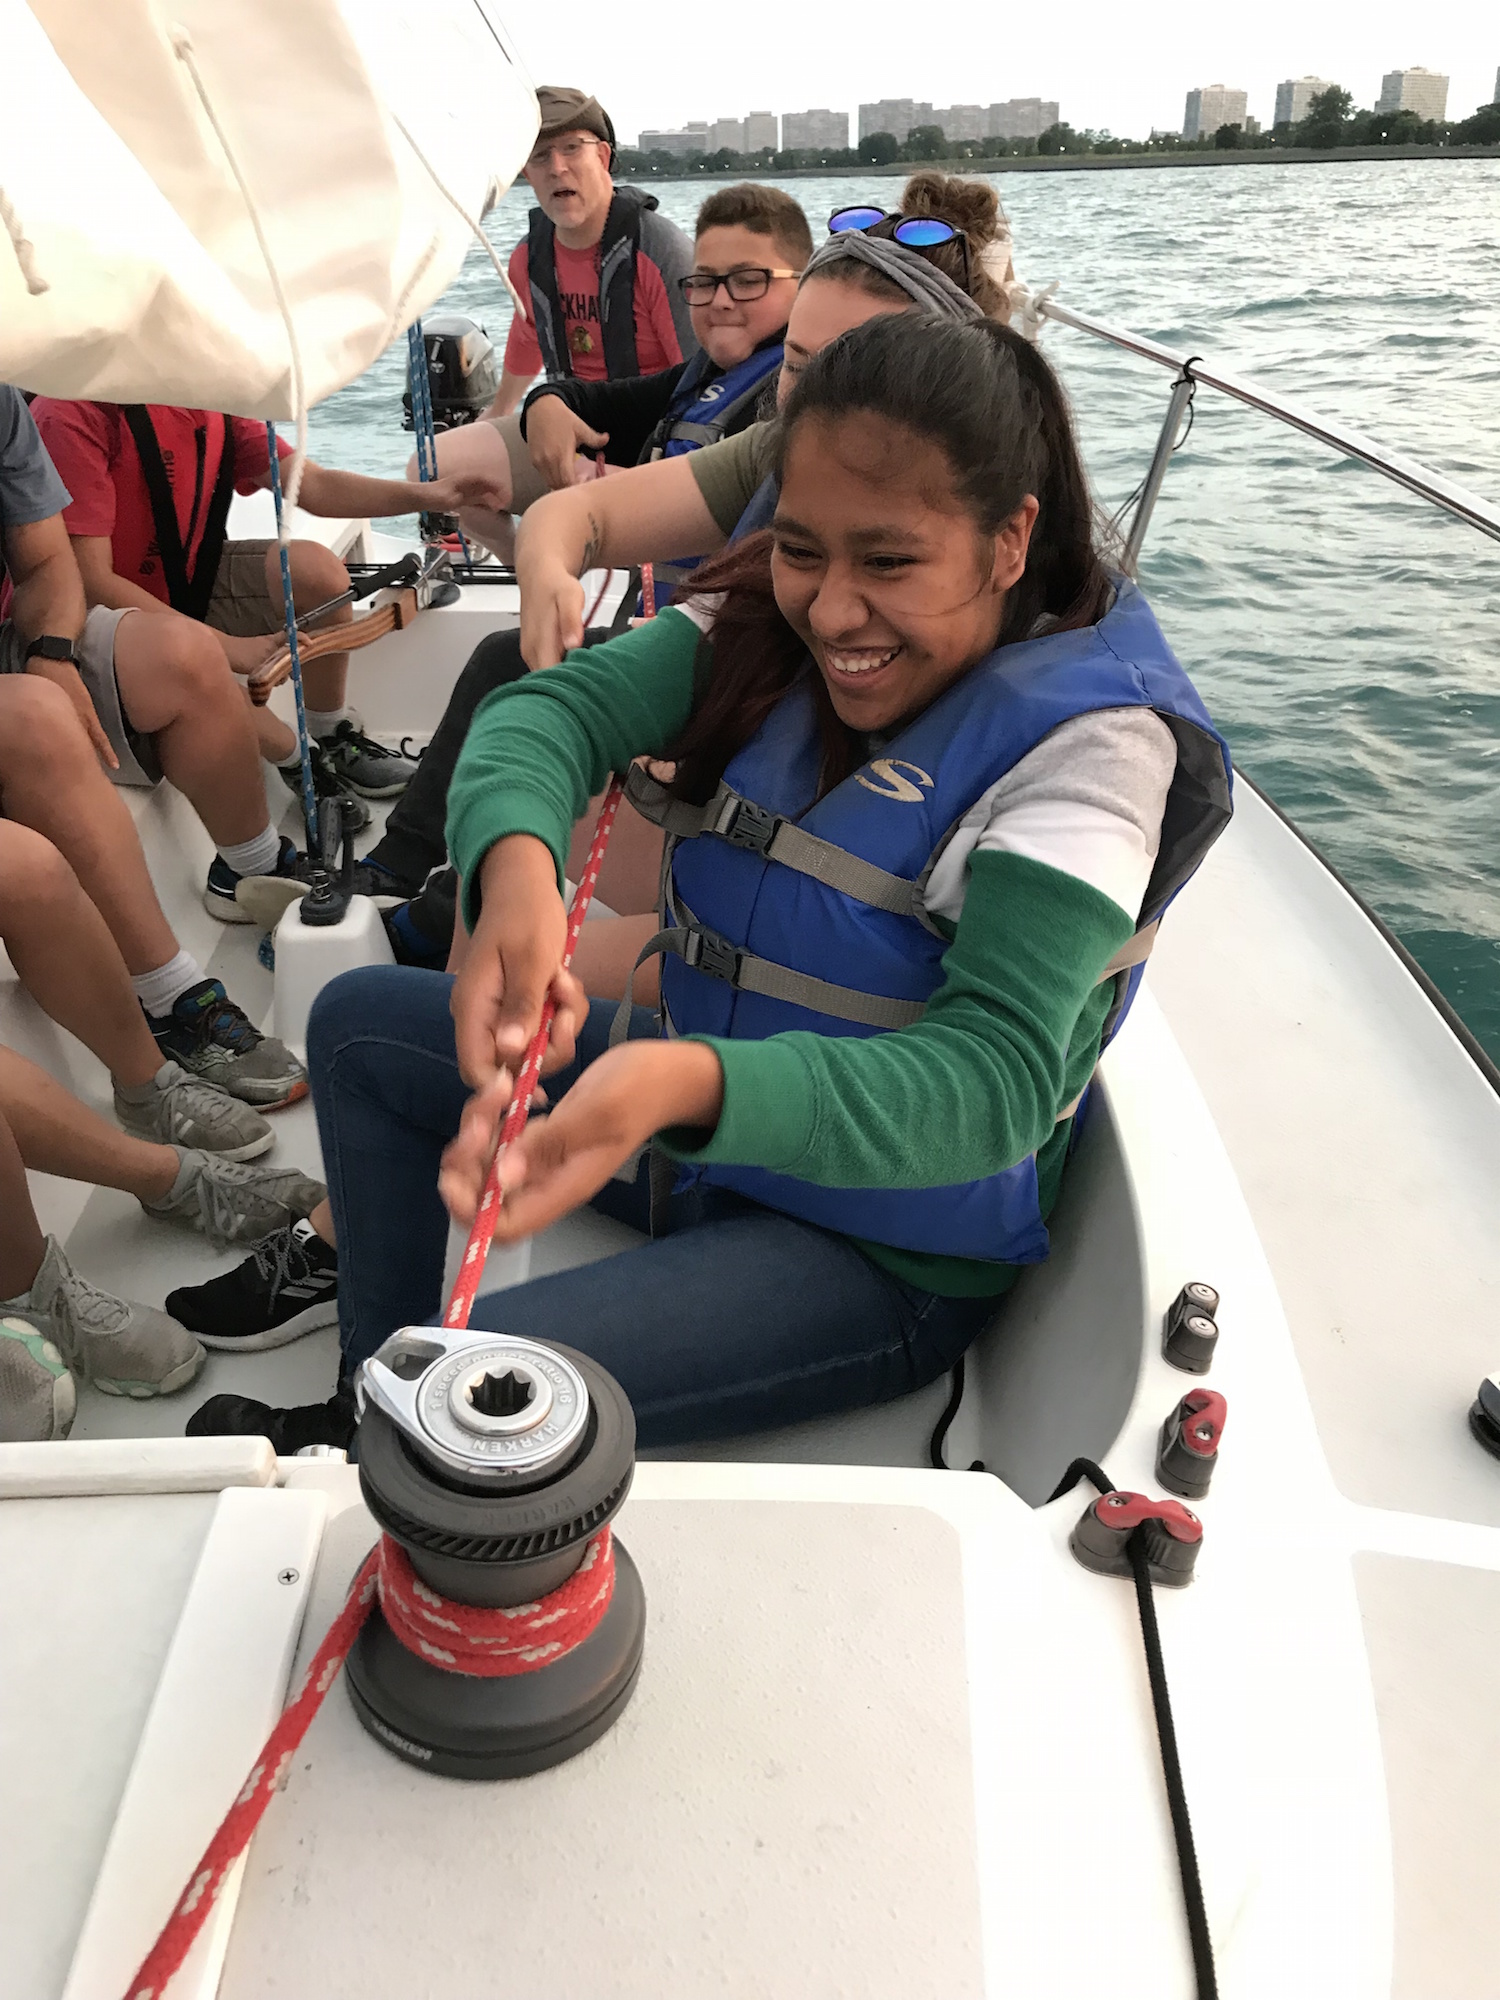 Our Mission - We seek to develop redemptive relationships through life-giving risk. We work to strengthen mentorship through sailing; we provide opportunities for youth to get off the grid and onto the water where together we build life skills such as teamwork, communication, risk evaluation and contingency planning.Learn More